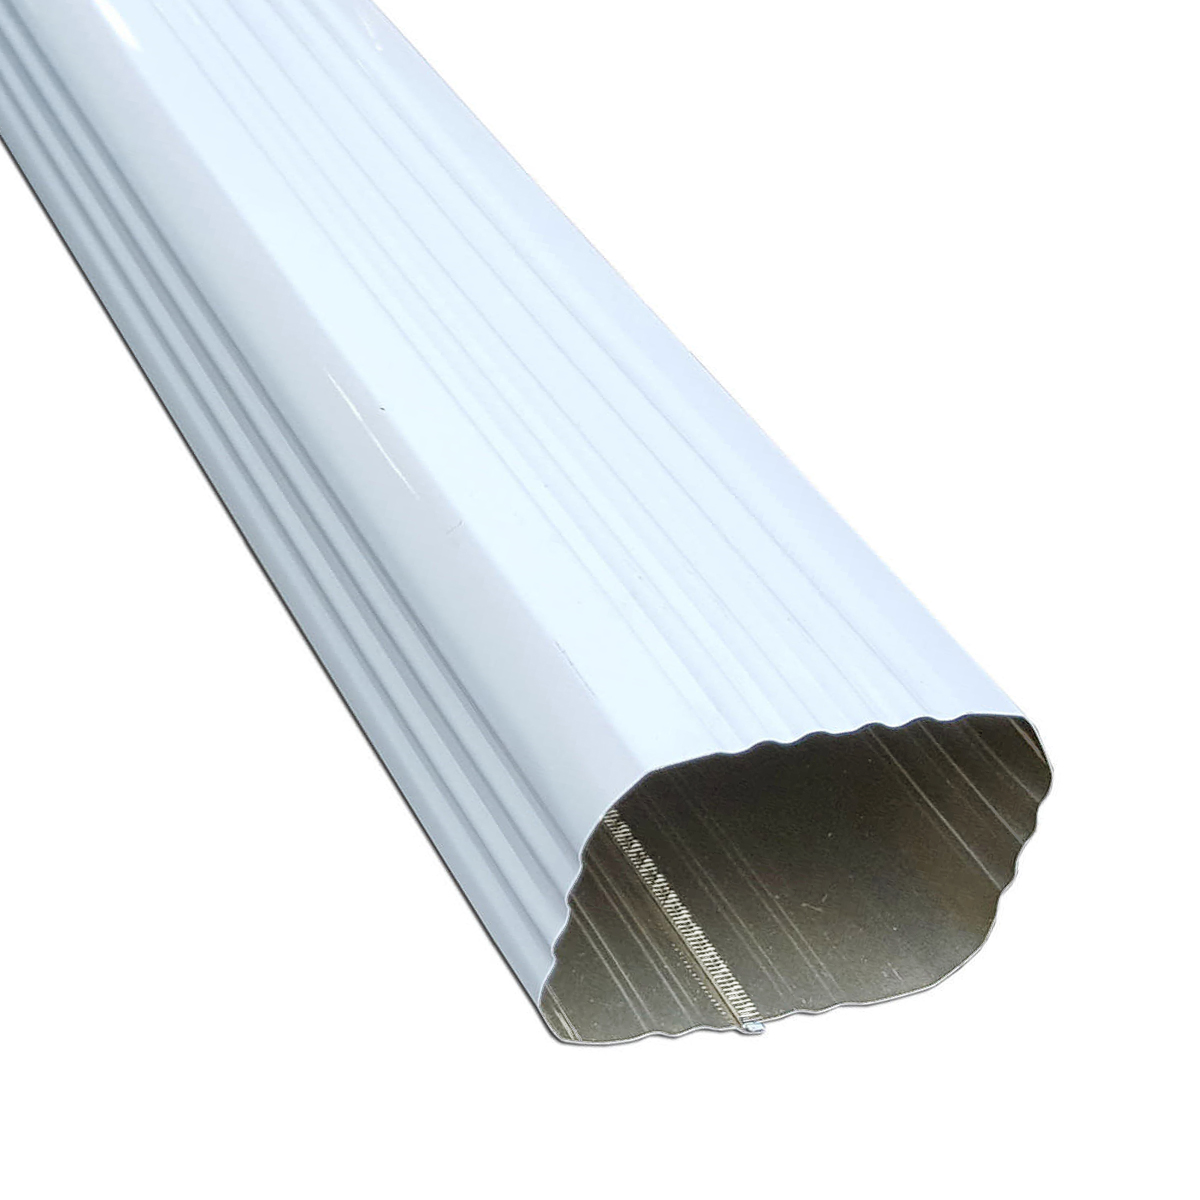 Down Spout 2X3 Sq. Conductor Pipe Wh